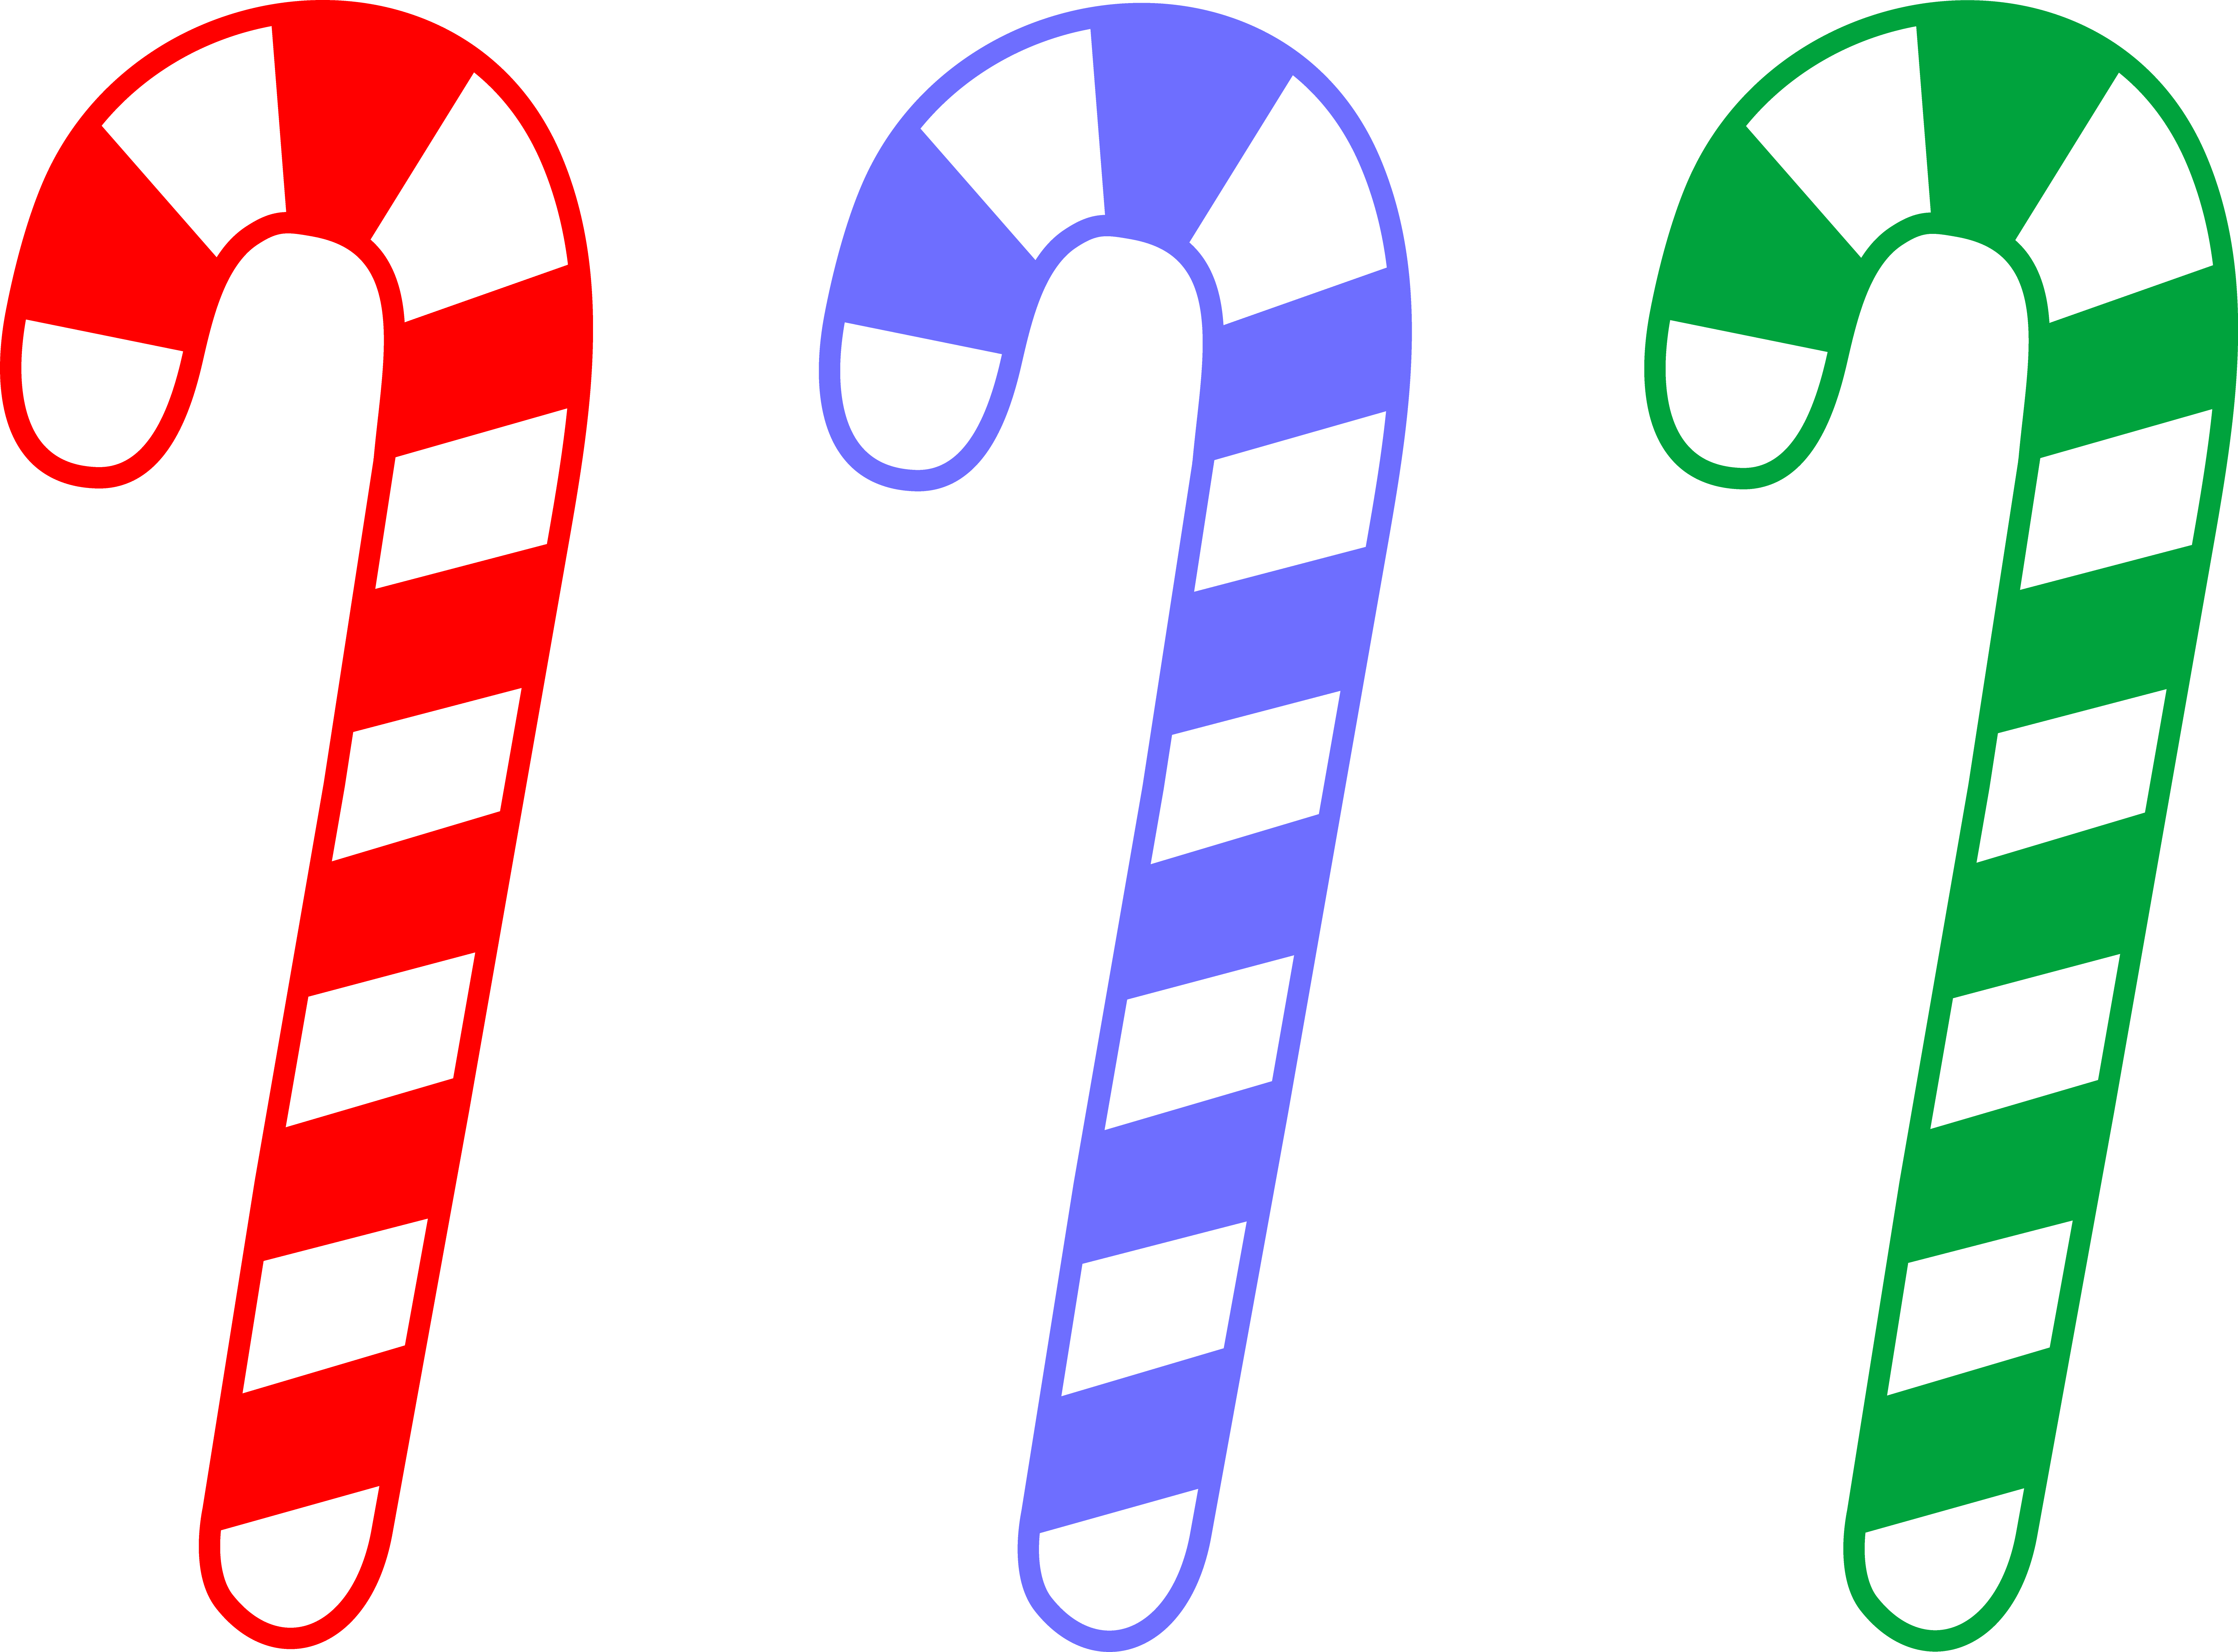 Clip Art Candy Cane Clip Art Free Christ-Clip Art Candy Cane Clip Art free christmas candy cane clipart clipartall red blue and green-11